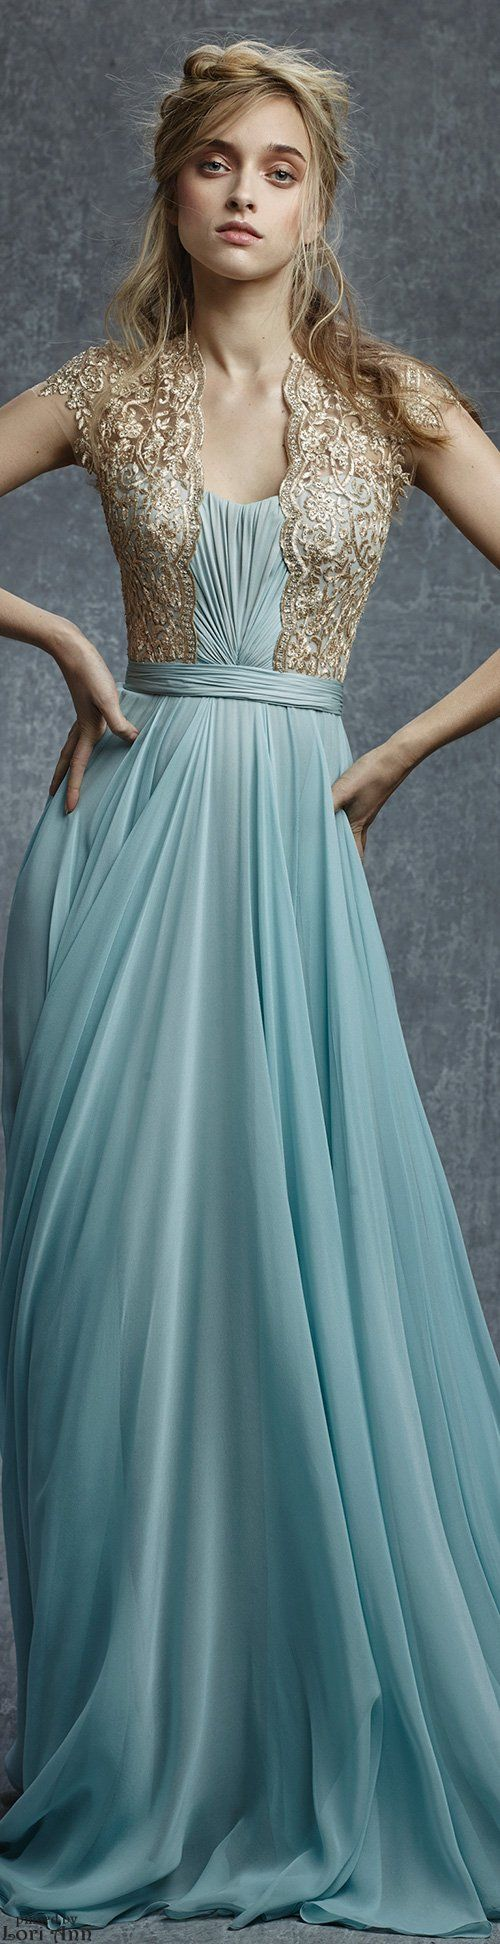 Reem Acra ~ Evening Gown, Aqua, Pre-Fall 2015. This has Duchess of Cambridge written all over it. Exquisite!!